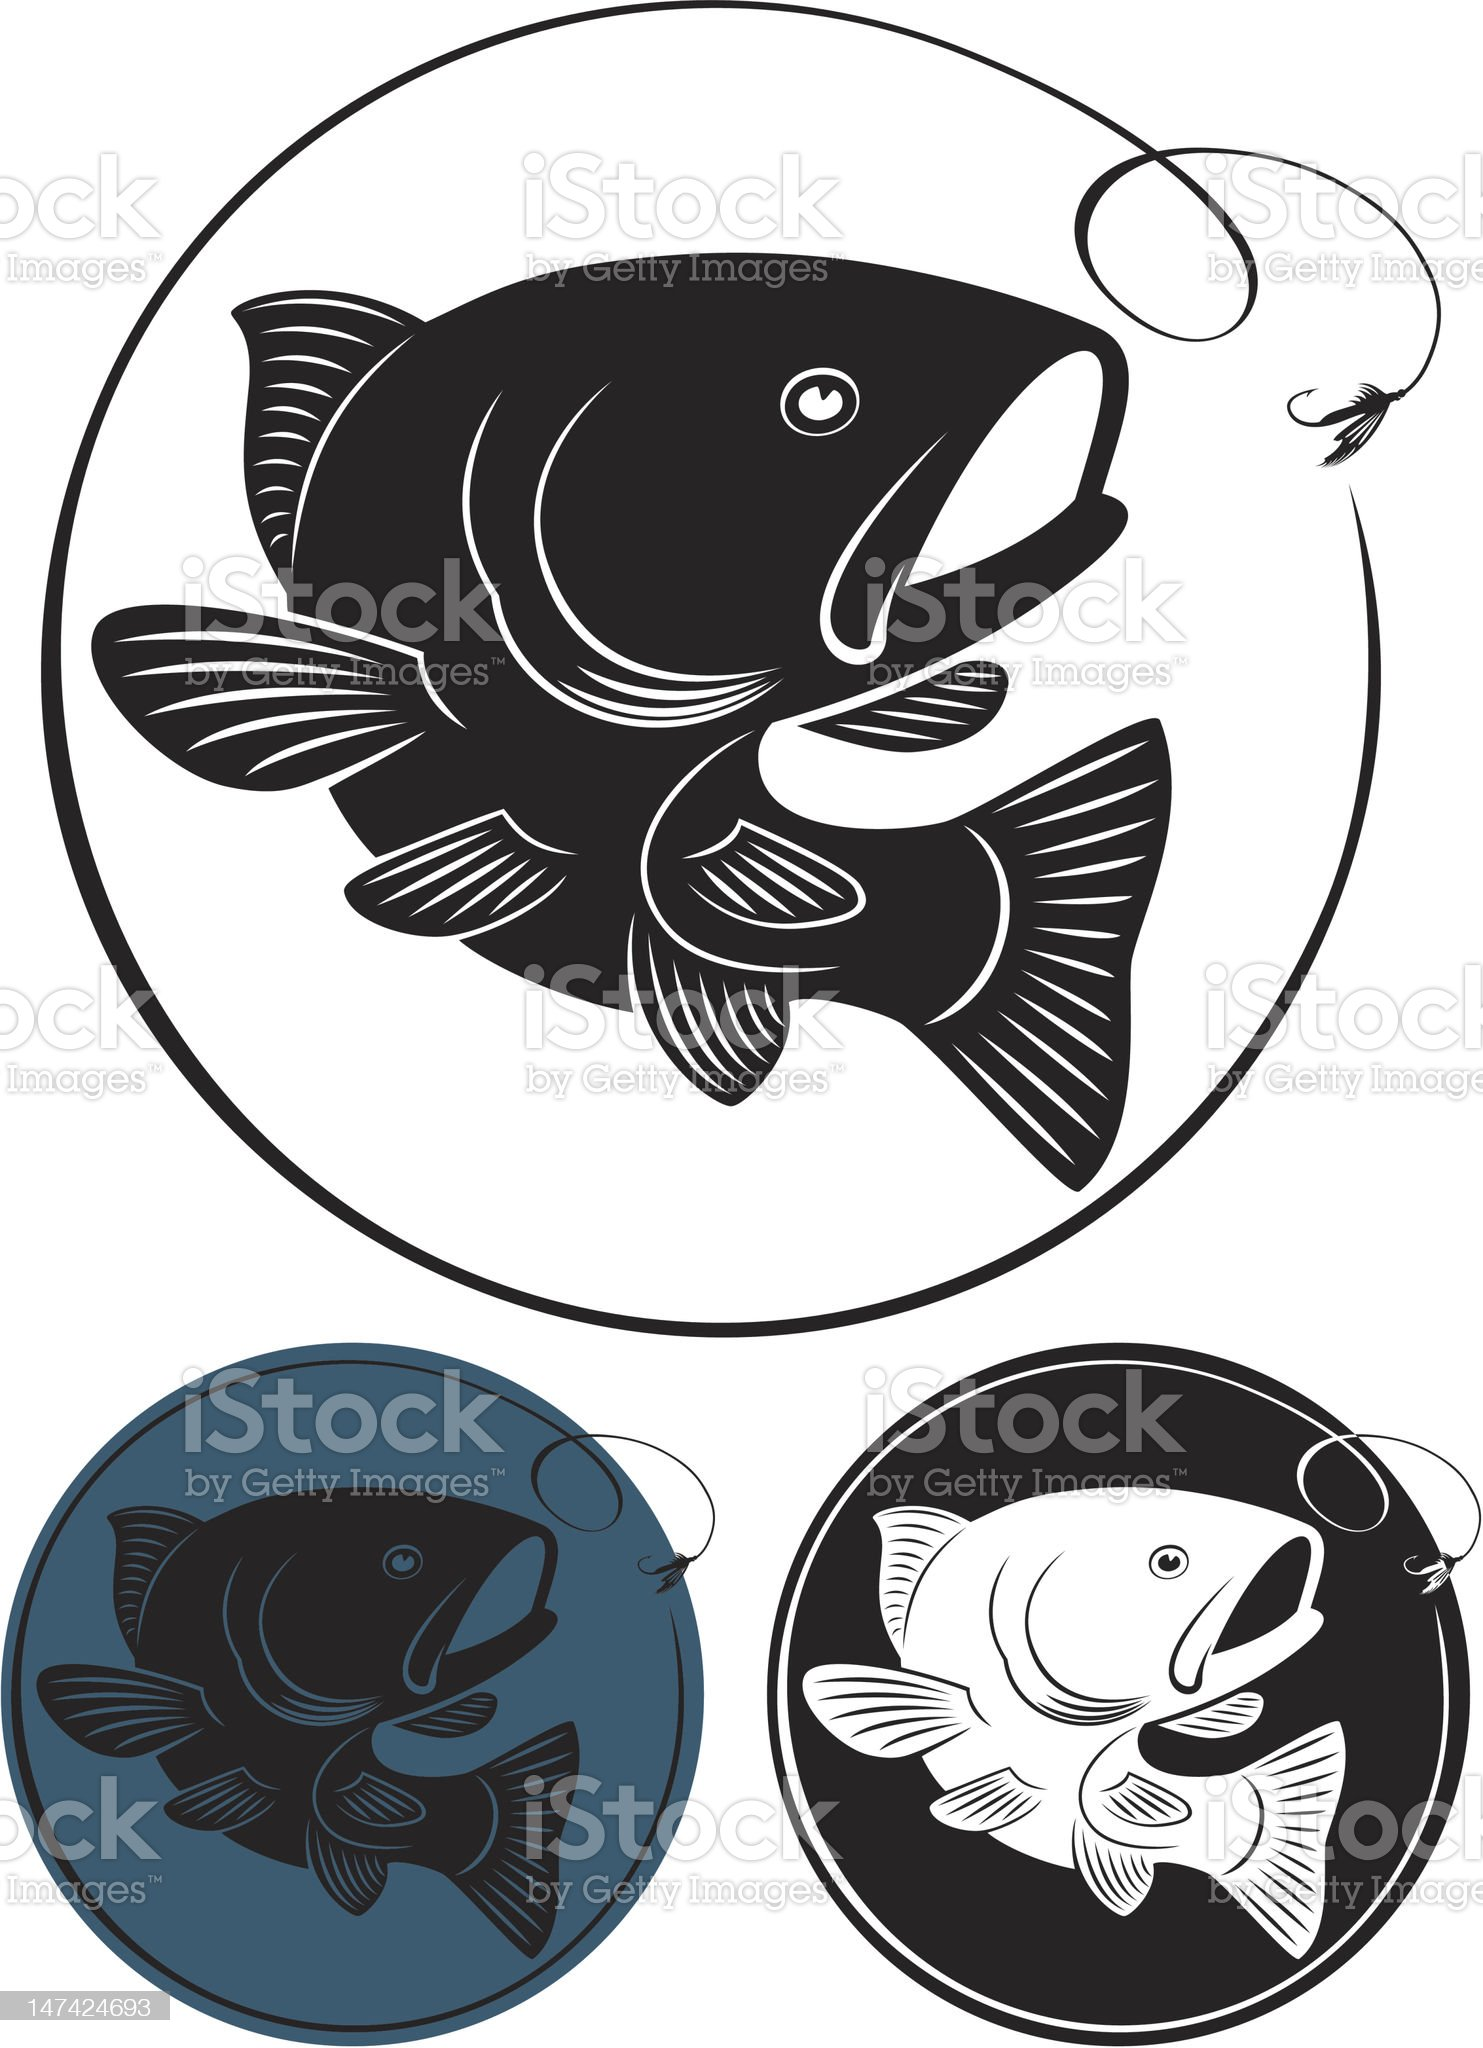 Blue, black and white circular trout illustration icons royalty-free stock vector art